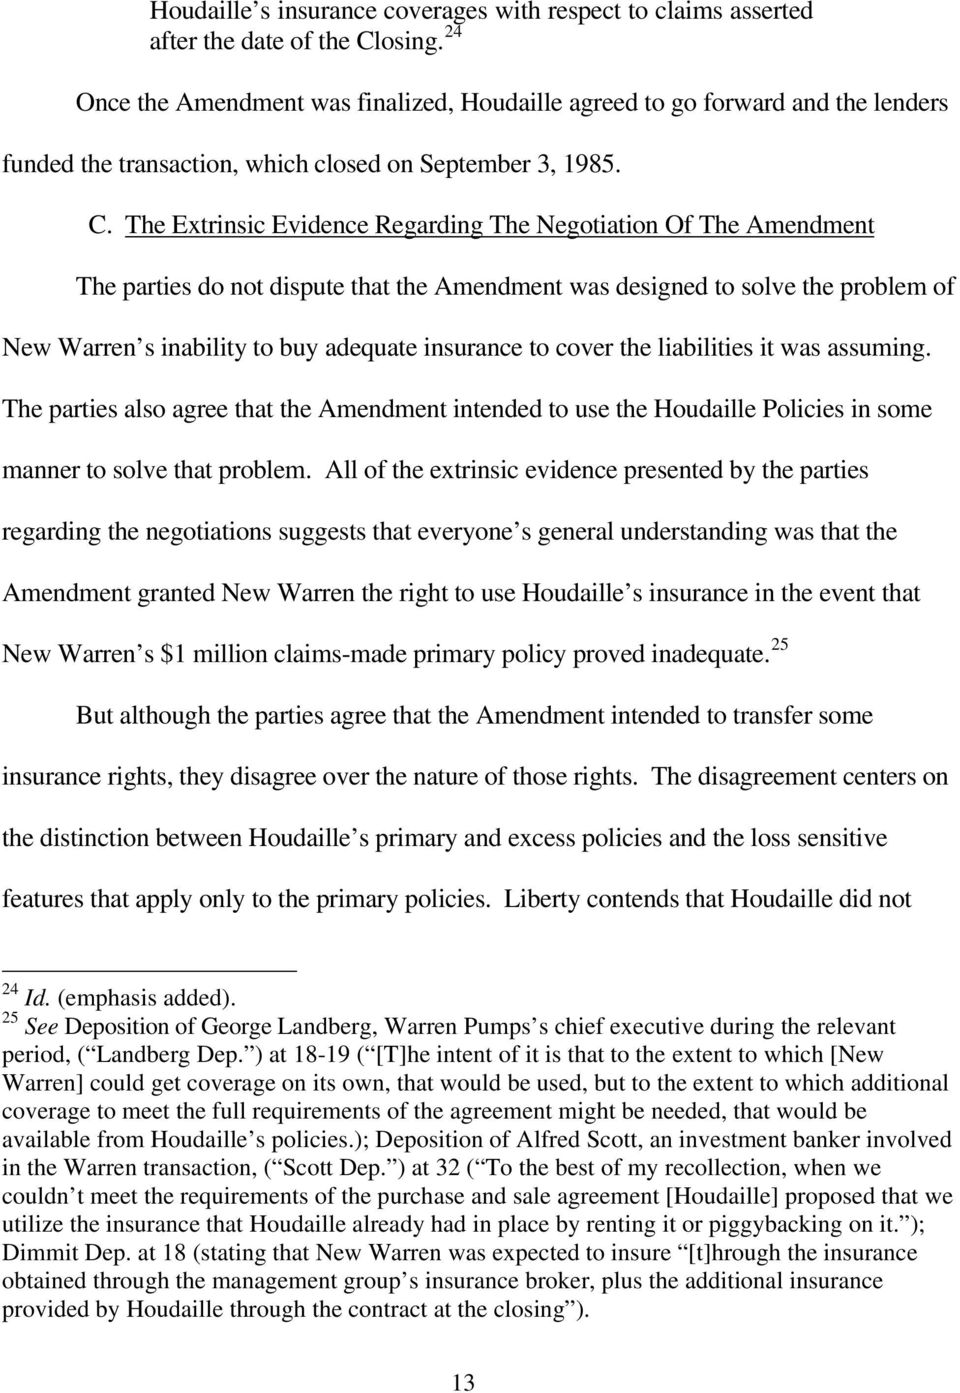 The Extrinsic Evidence Regarding The Negotiation Of The Amendment The parties do not dispute that the Amendment was designed to solve the problem of New Warren s inability to buy adequate insurance